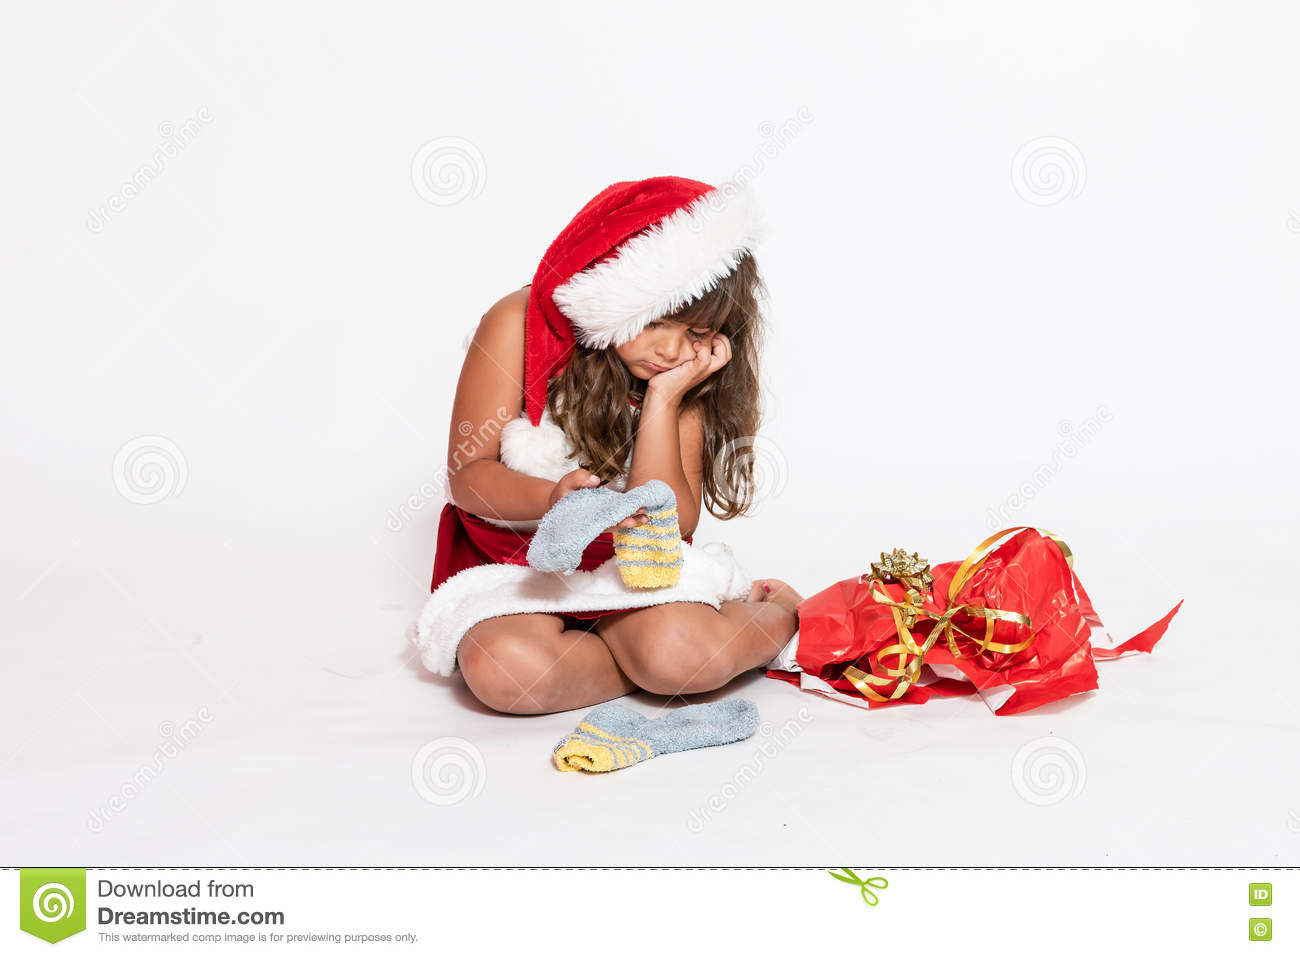 Sad girl in Santa Claus costume with inappropriate gift